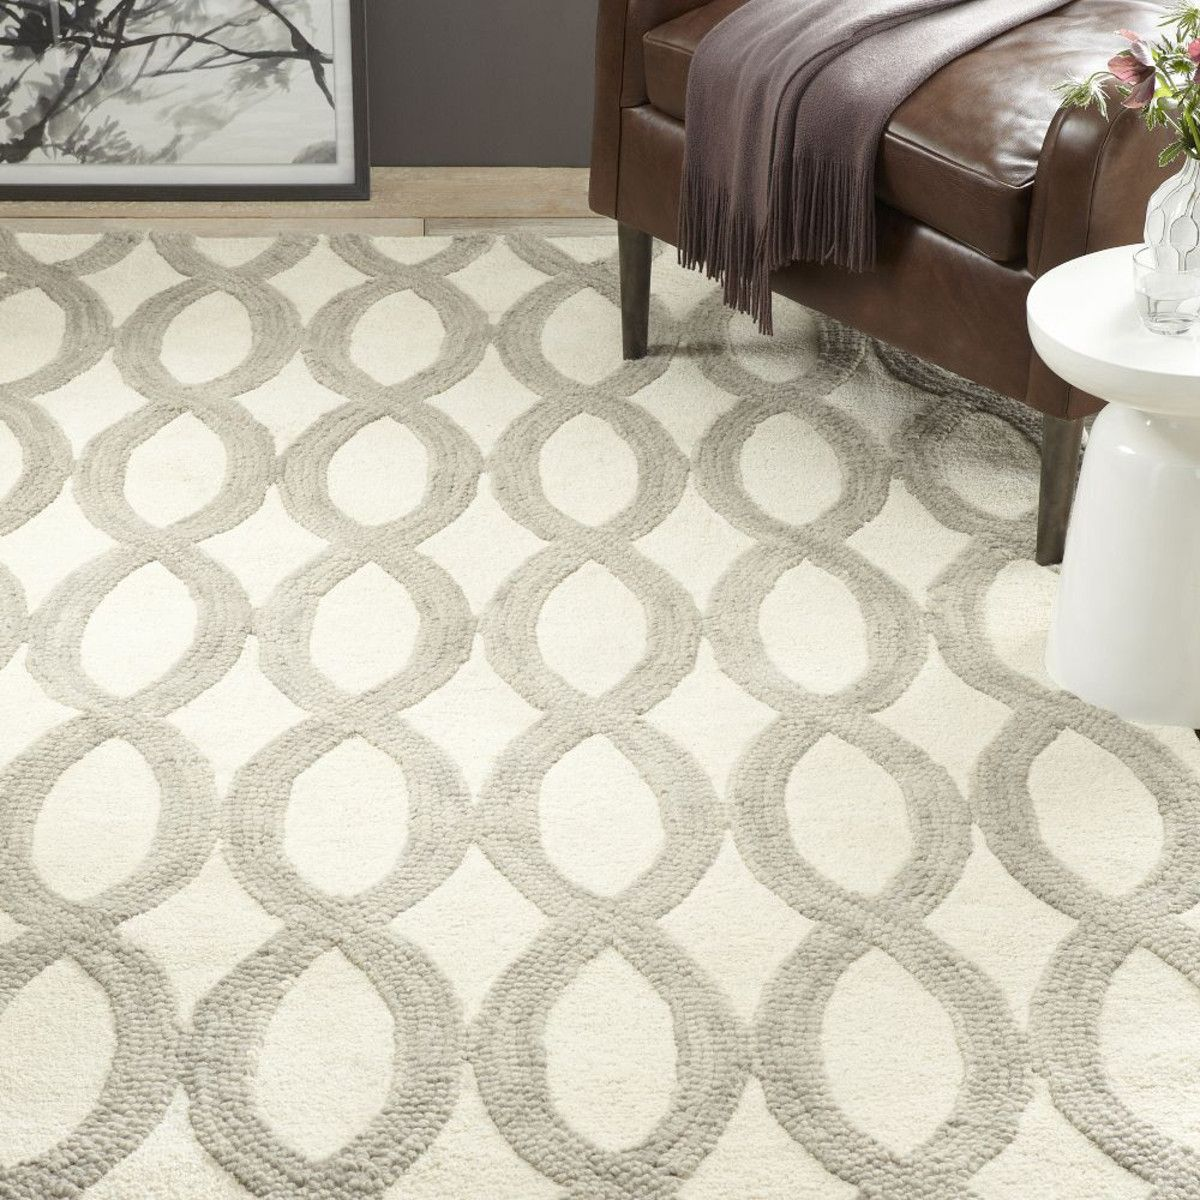 Linking loops wool rug ivory option for main living need 2x3m